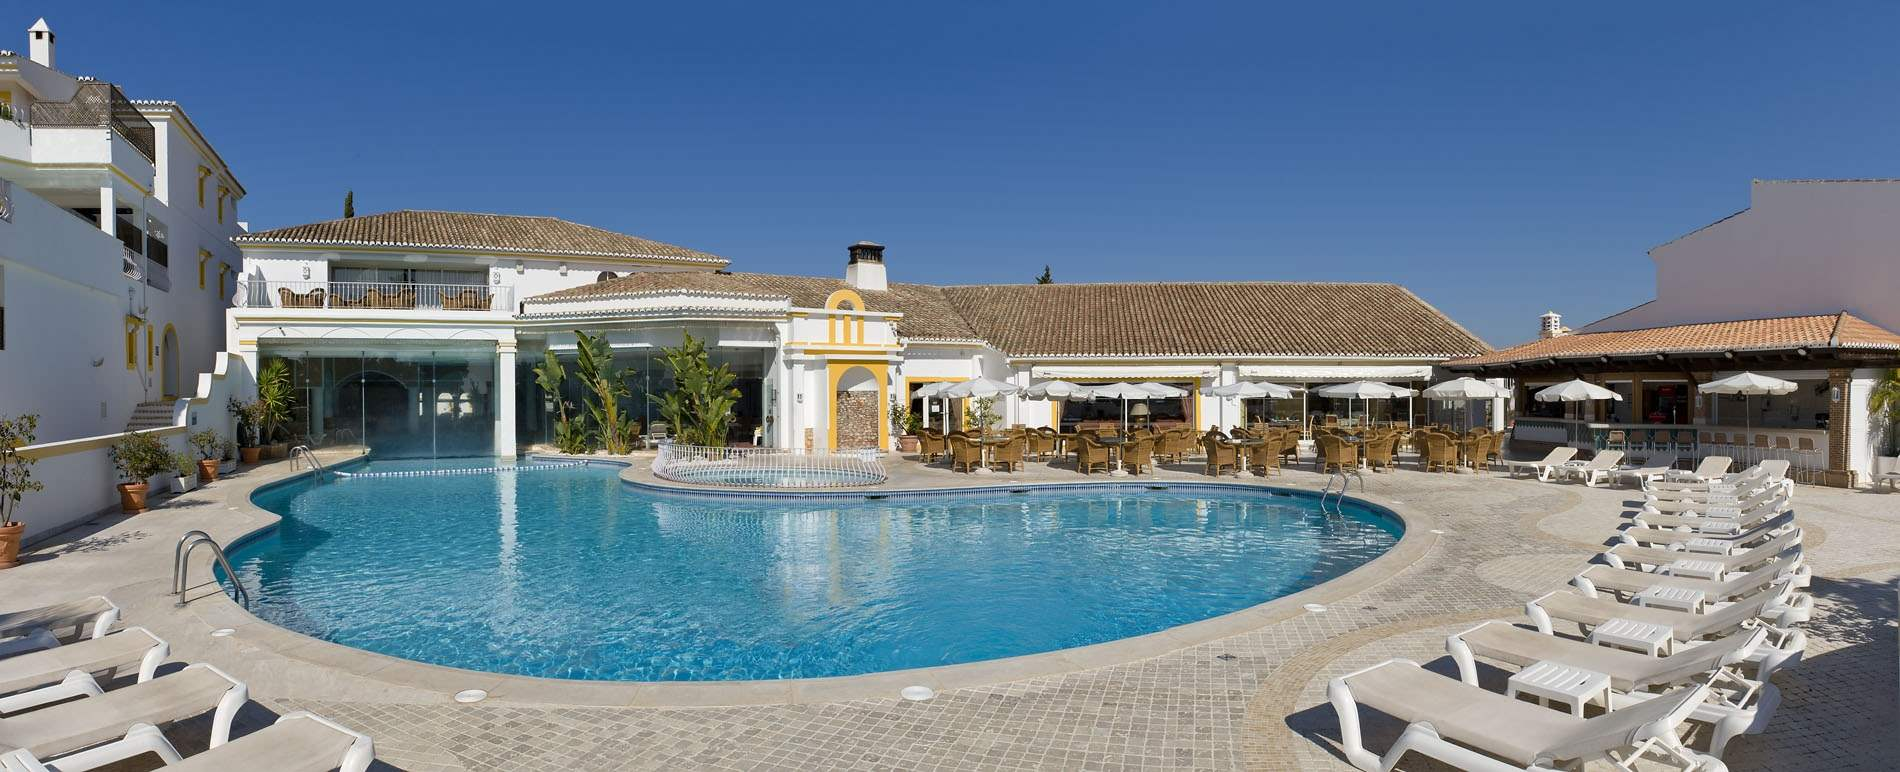 Four Seasons Fairway 2 Bed Hillside Apt -Jacuzzi, Sunday Arrival, 2 bedroom villa in Four Seasons Fairways, Algarve Photo #24